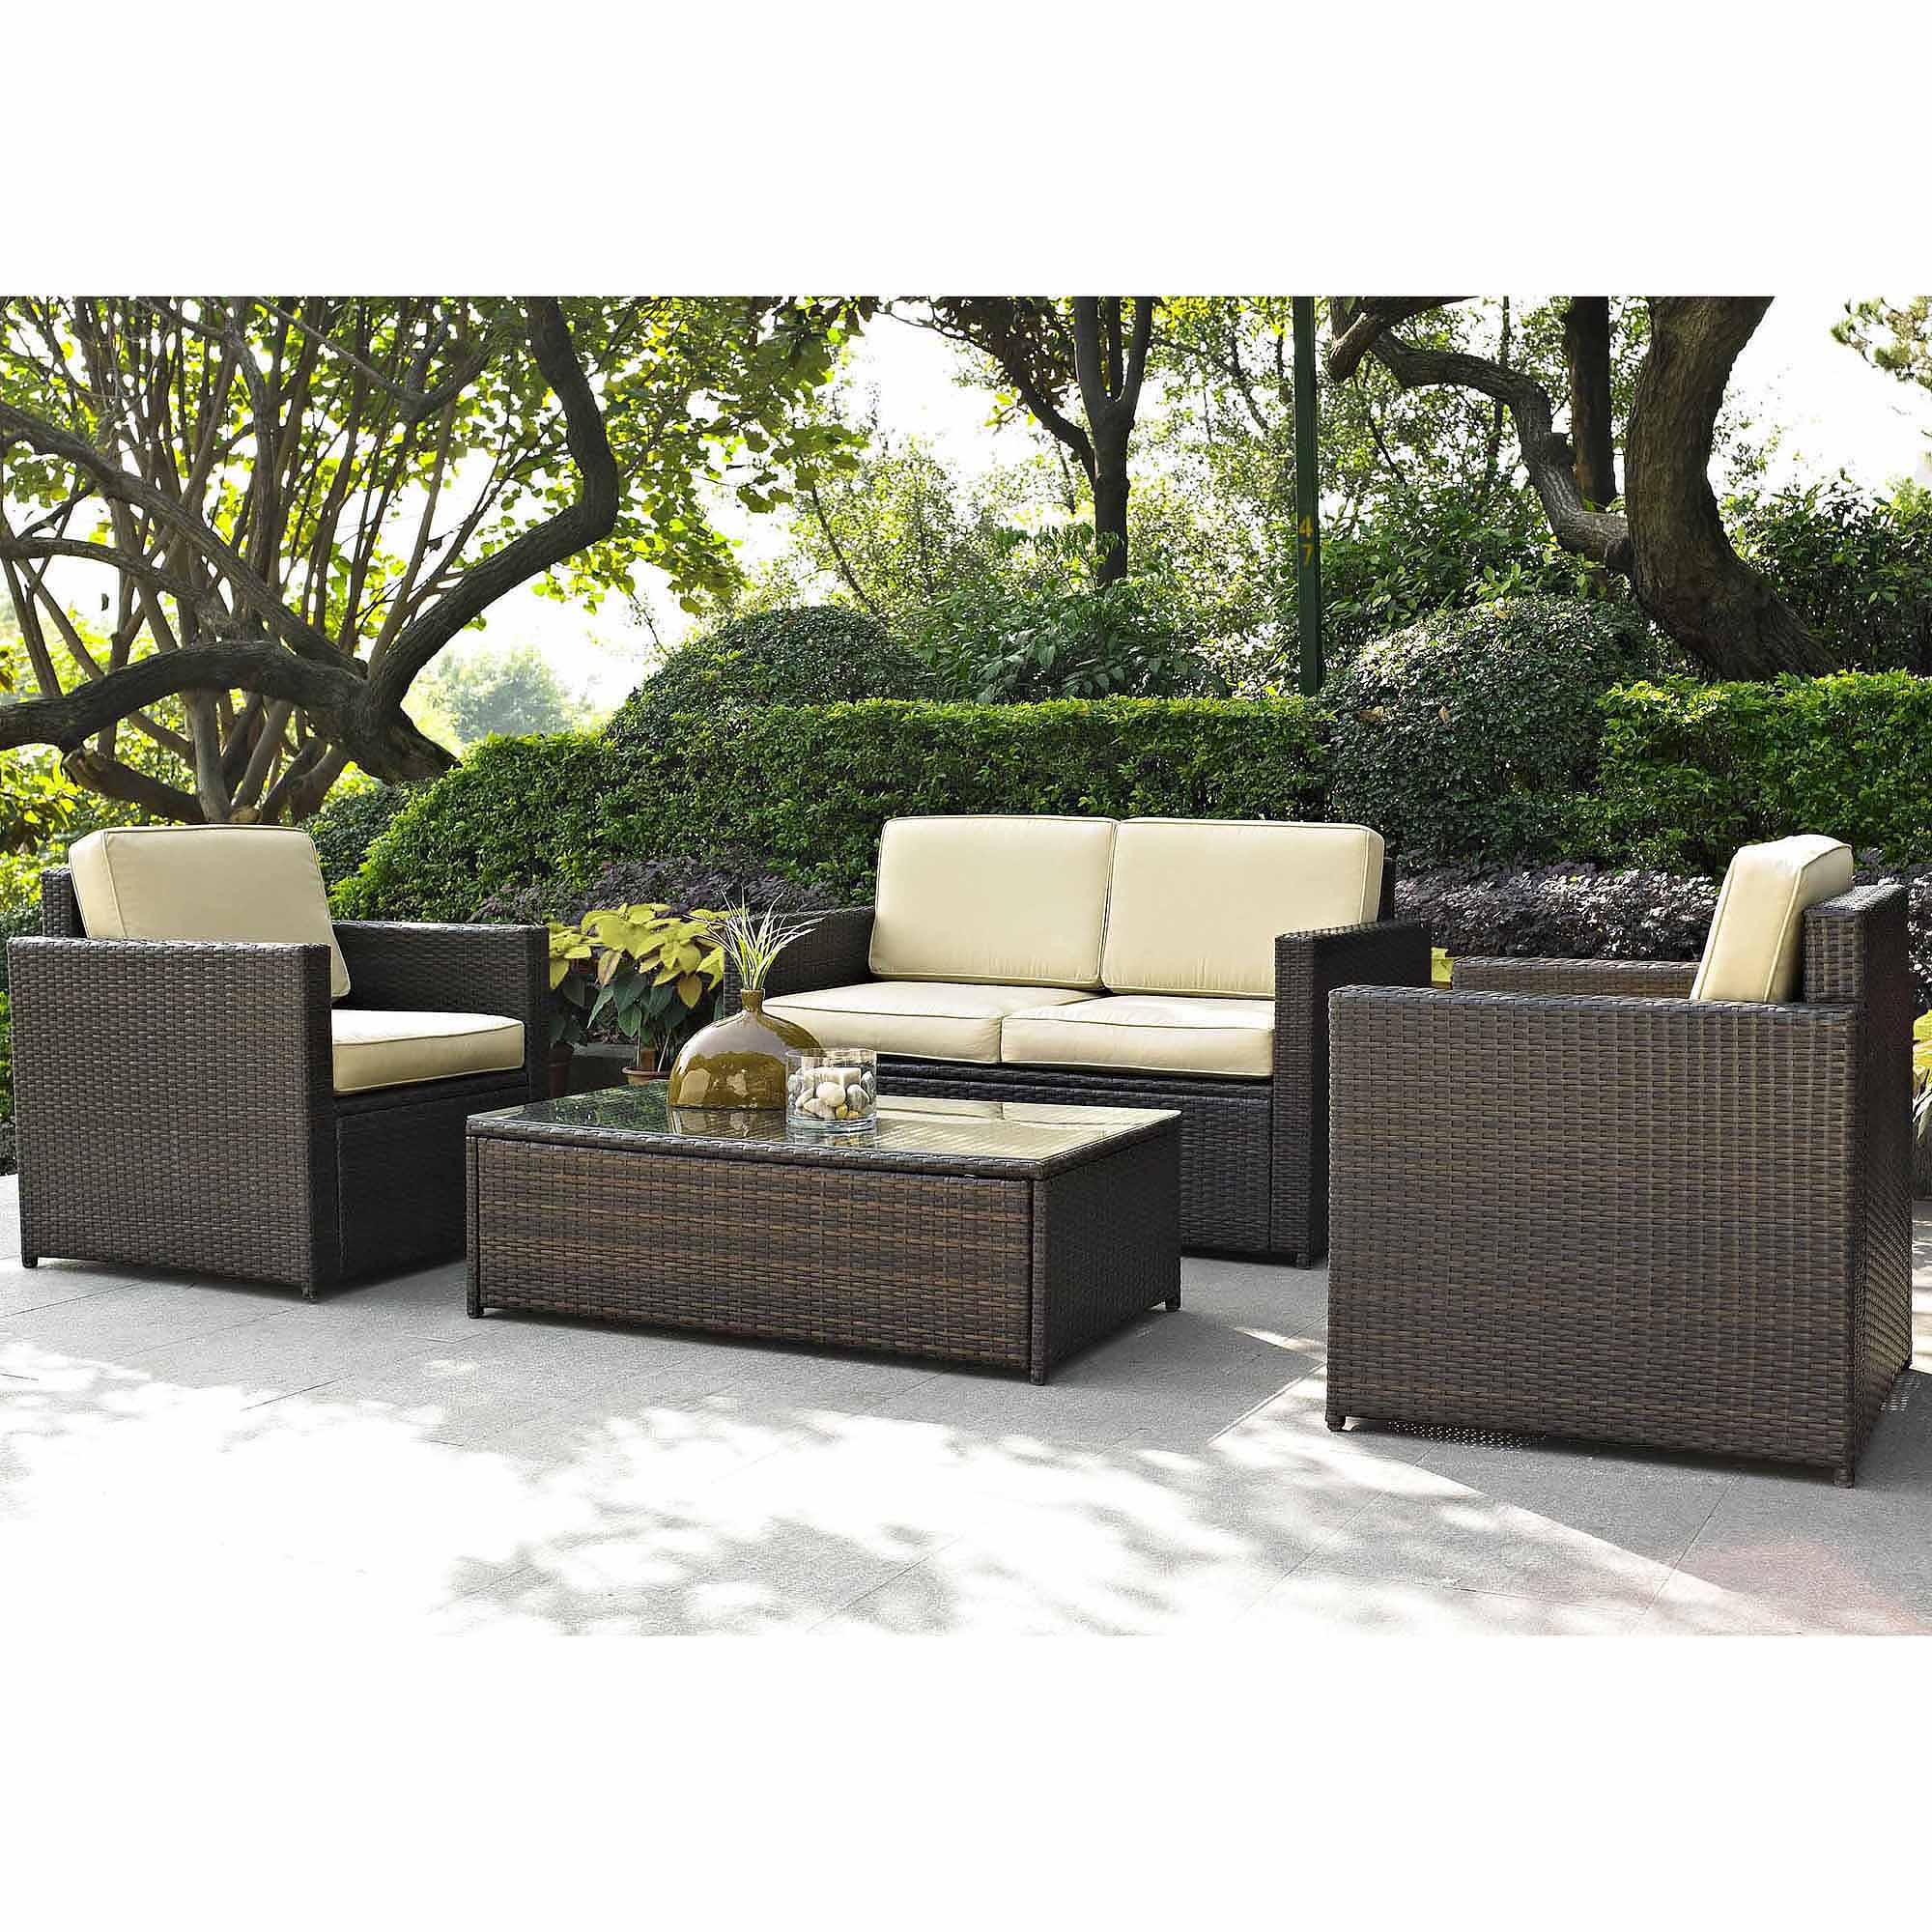 Give your Patio a new look with Rattan Patio Furniture